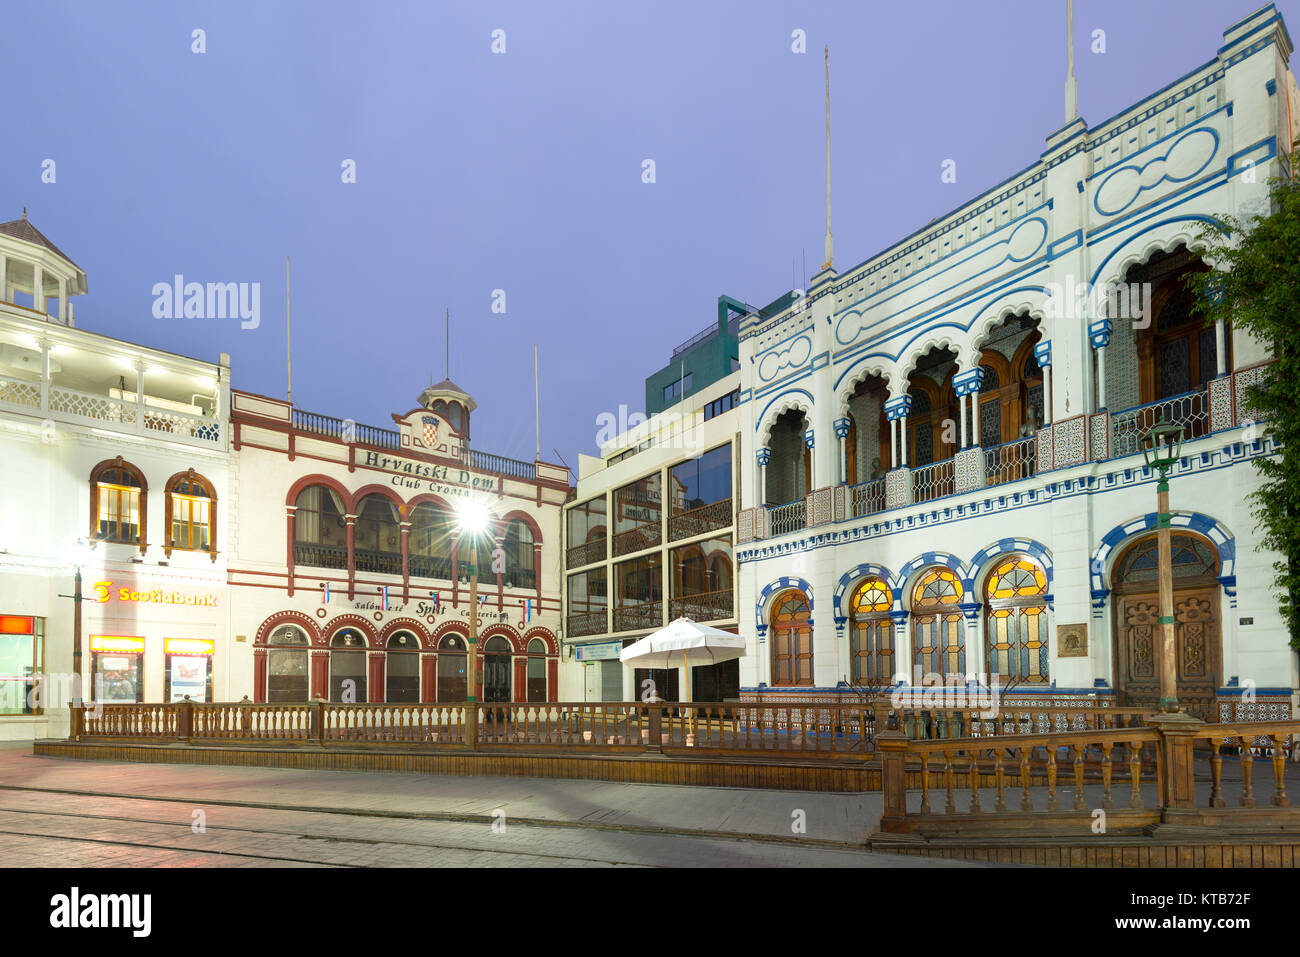 Iquique, Tarapaca Region, Chile - A traditional building of Moorish architecture house of the Spanish social club - Stock Image